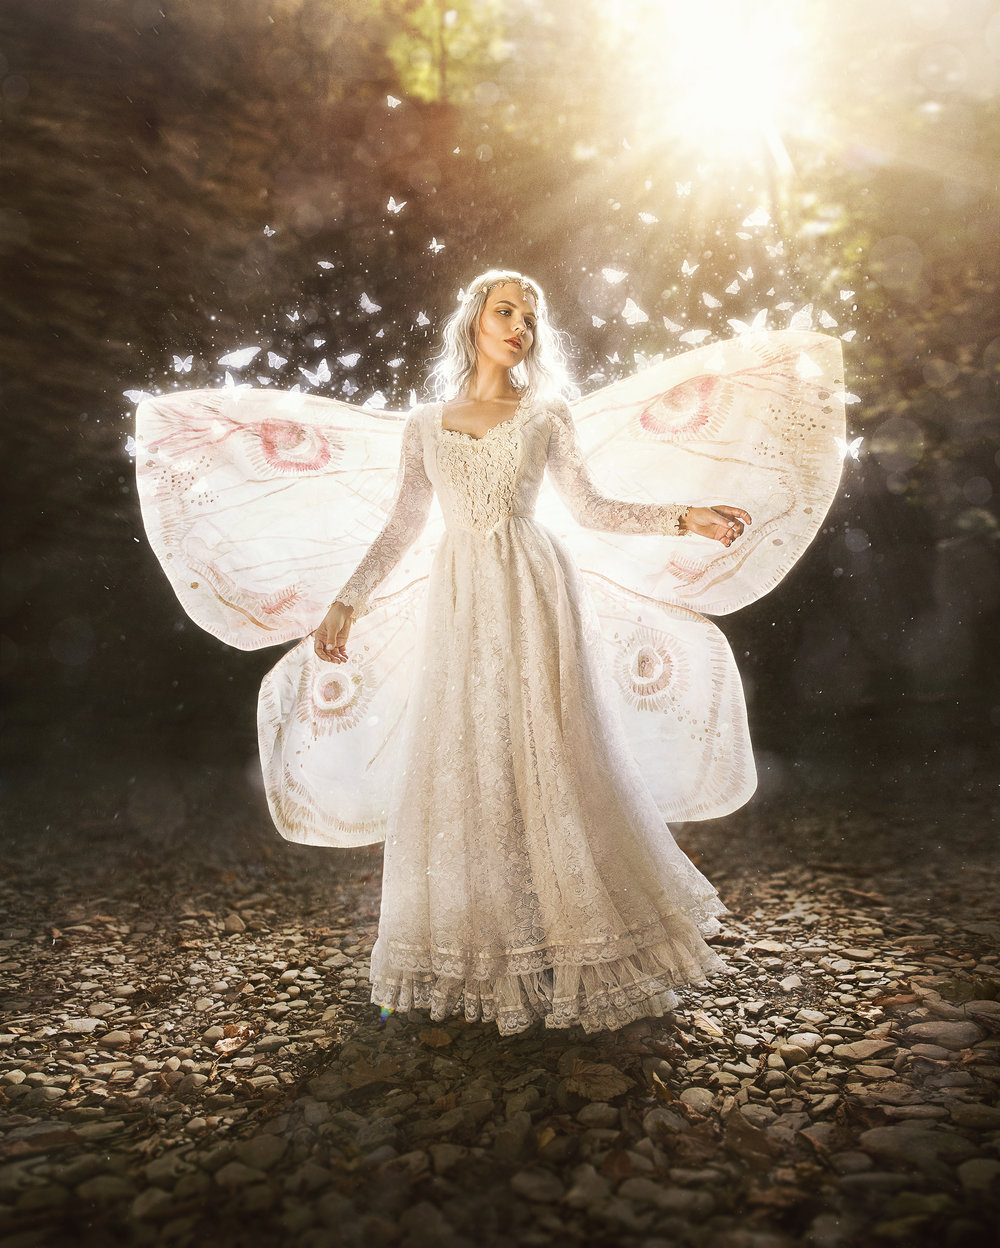 """Lady of the Light"" Featuring Laryssa Fierle"